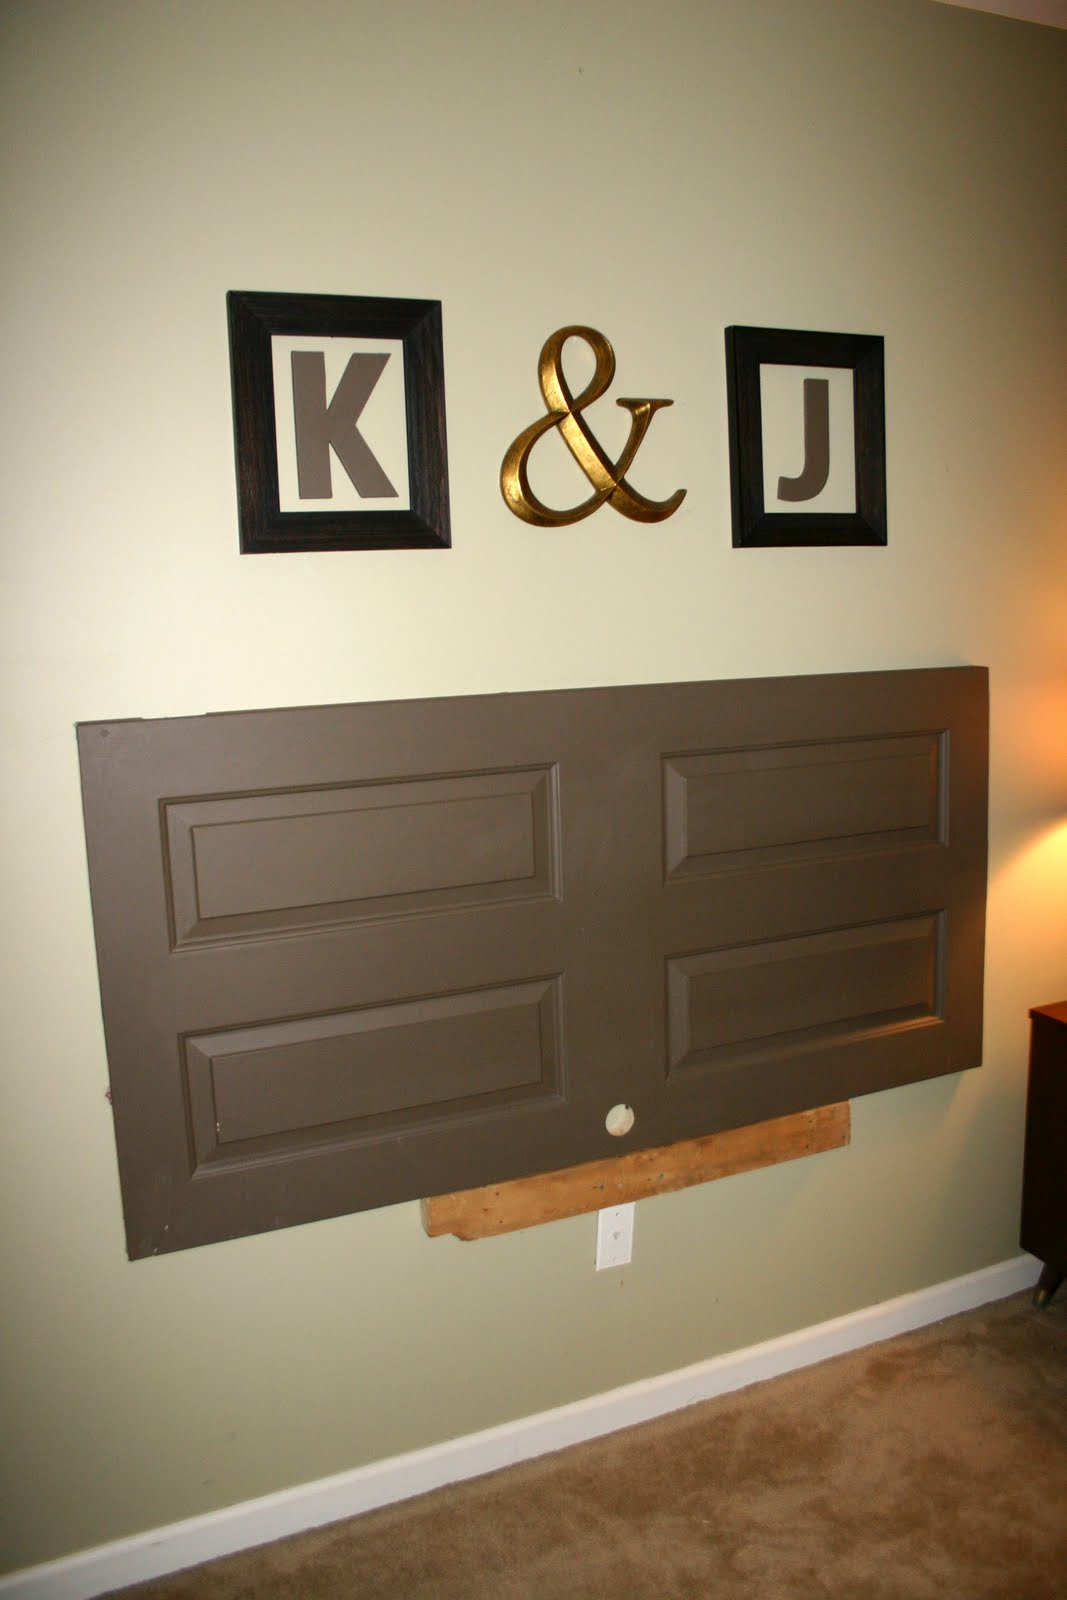 Diy headboards east coast creative blog for Door in the wall